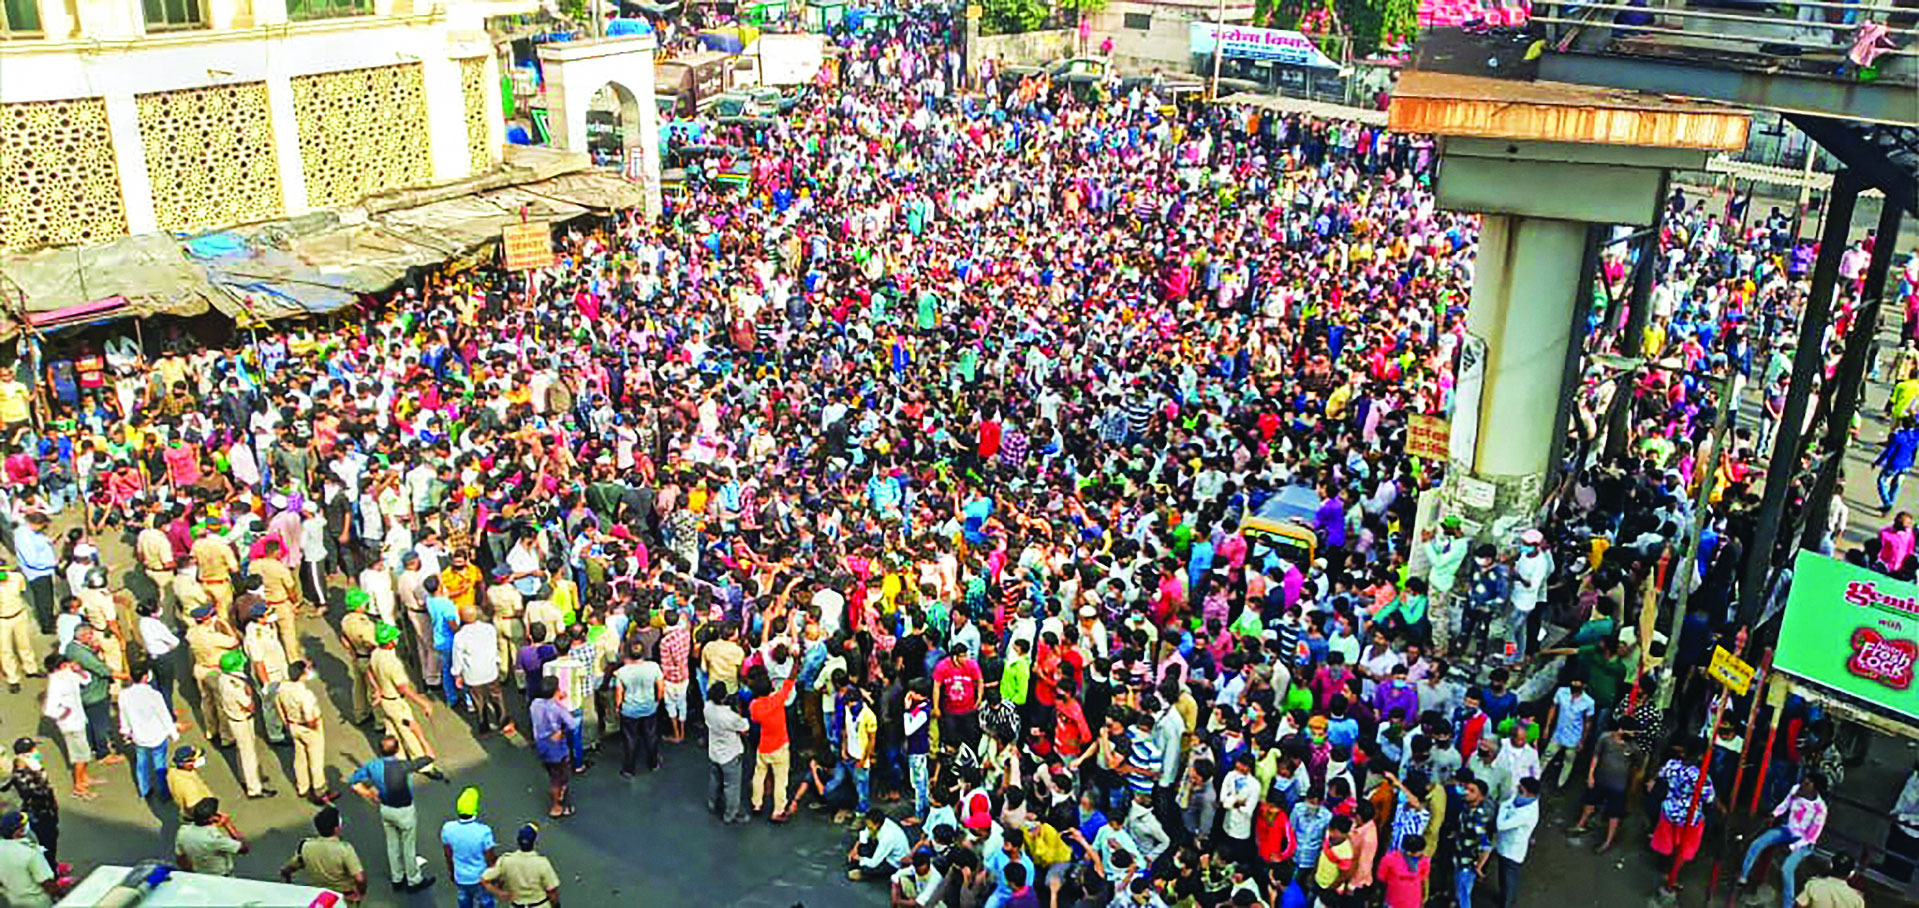 Restive migrants lose patience, stage protest